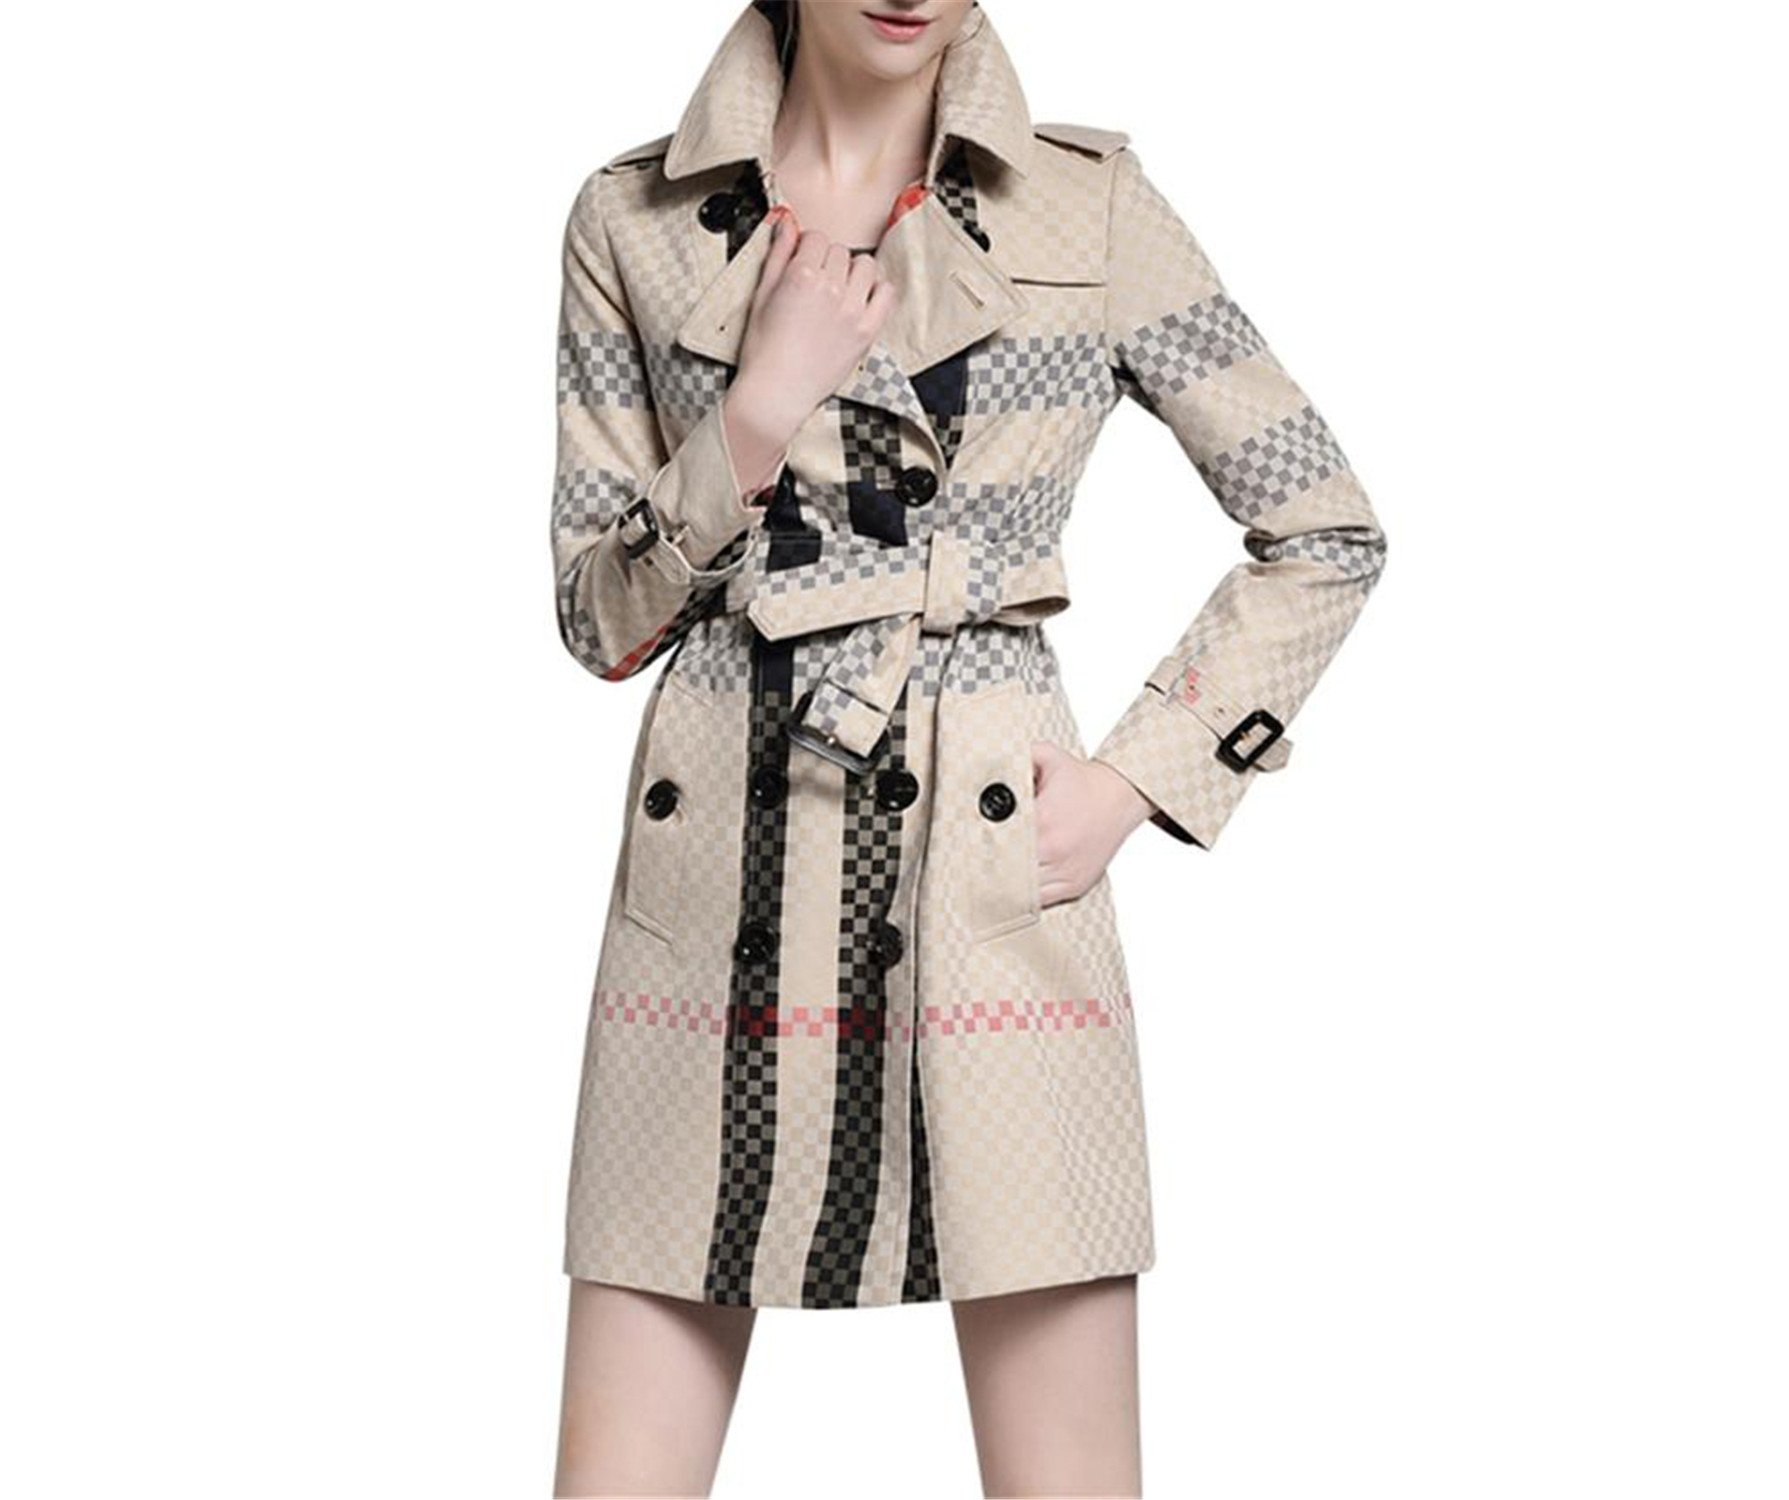 Suppliesed BURDULLY New British Style Patchwork Double Breasted Windbreaker Winter Trench England Women Trench Coat Casual Plaid Autumn Khaki S